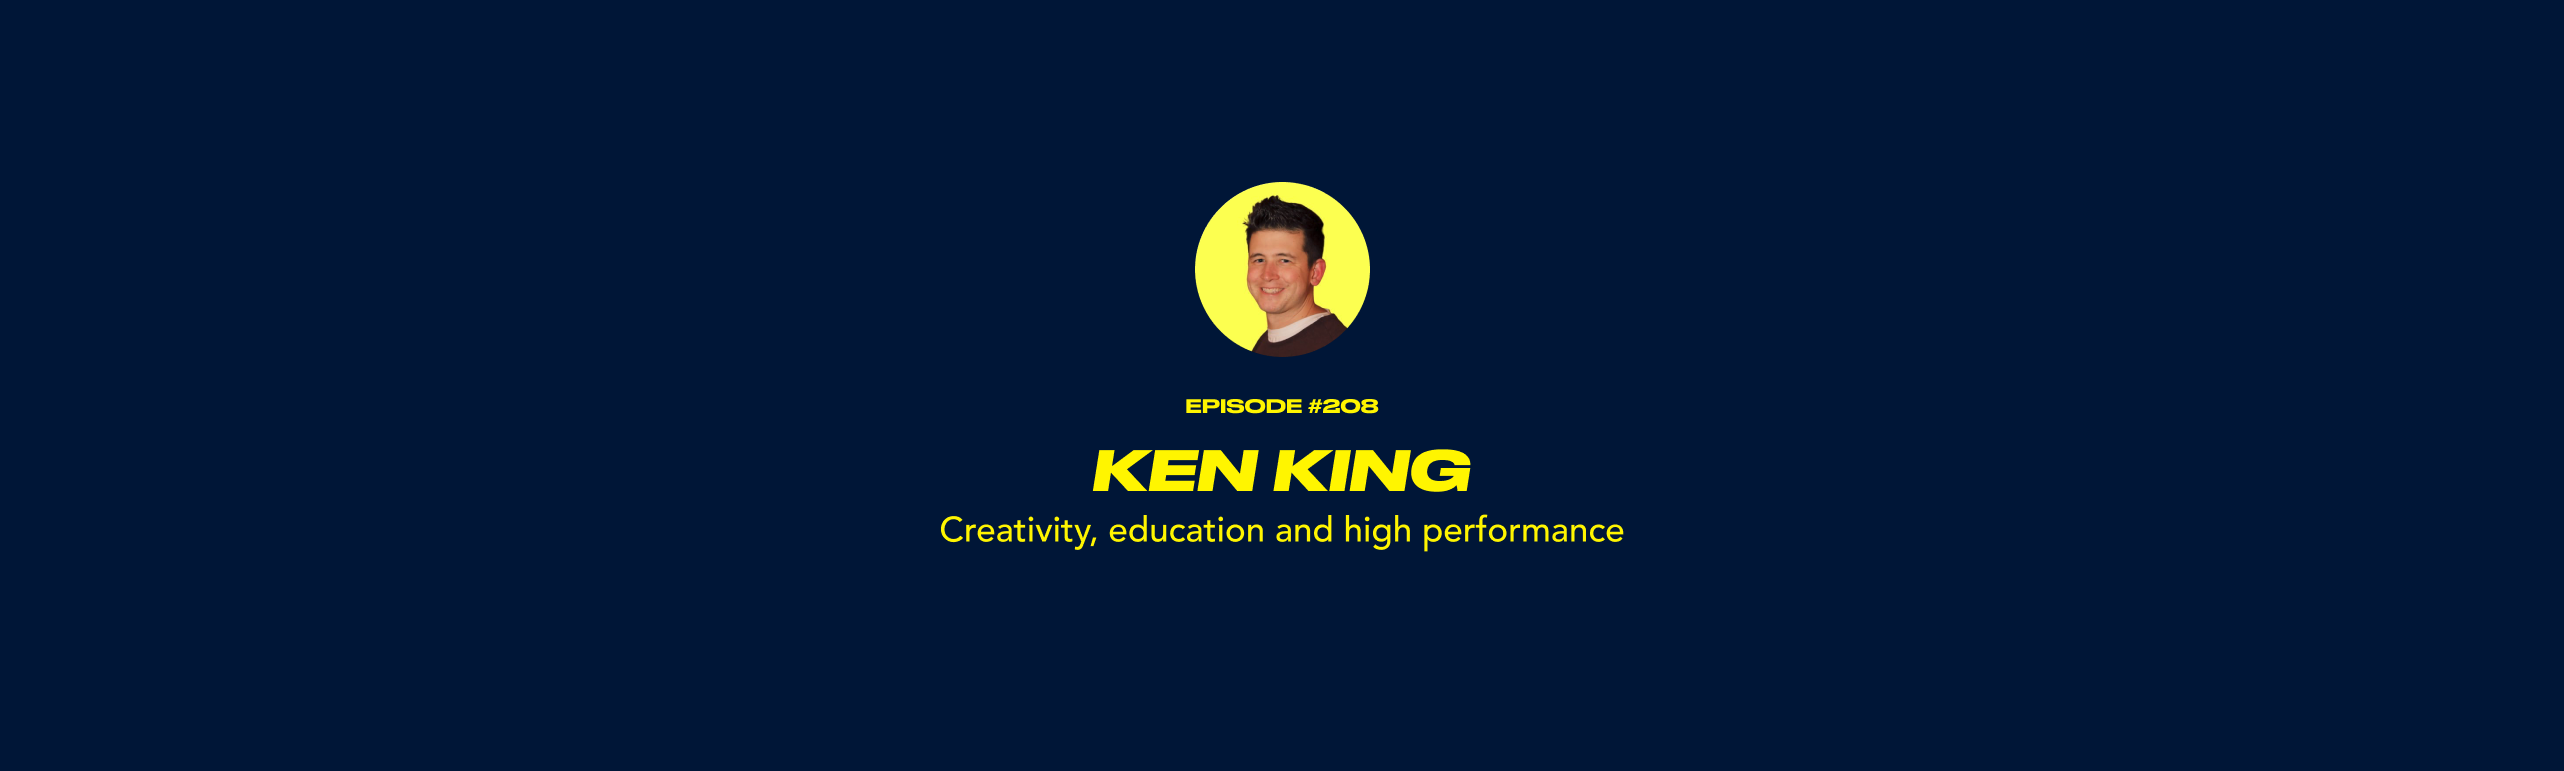 Ken King - Creativity, education and high performance